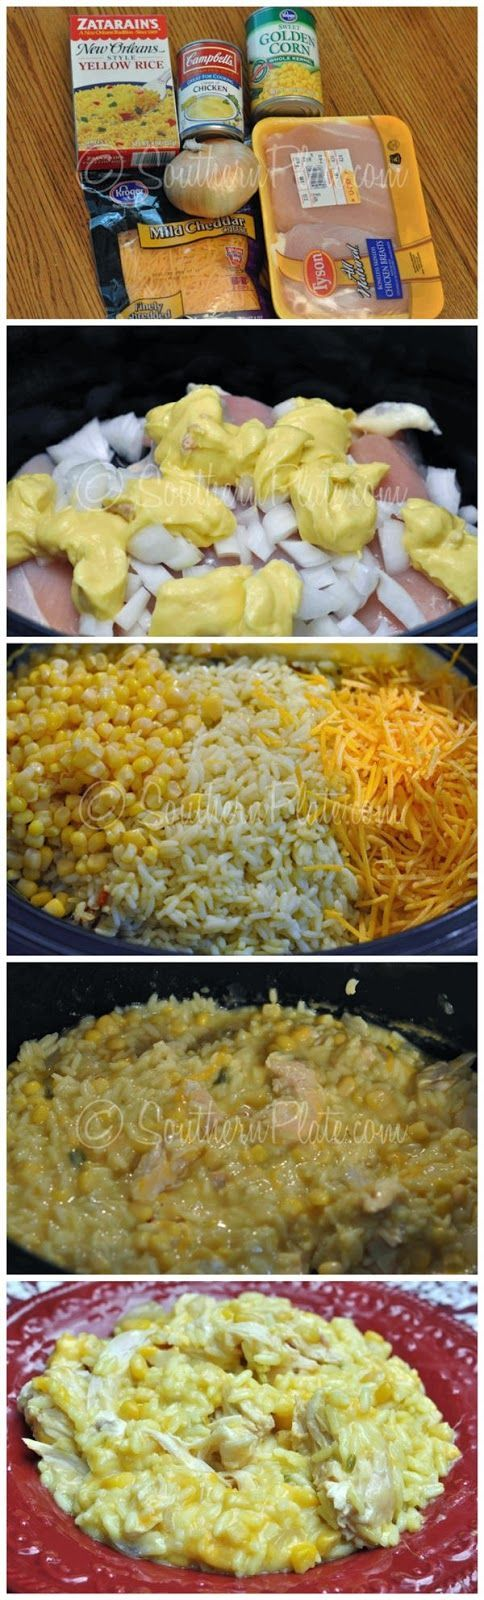 Slow Cooker Cheesy Chicken And Rice (The downside of being a Swan Princess) | Southern Plate